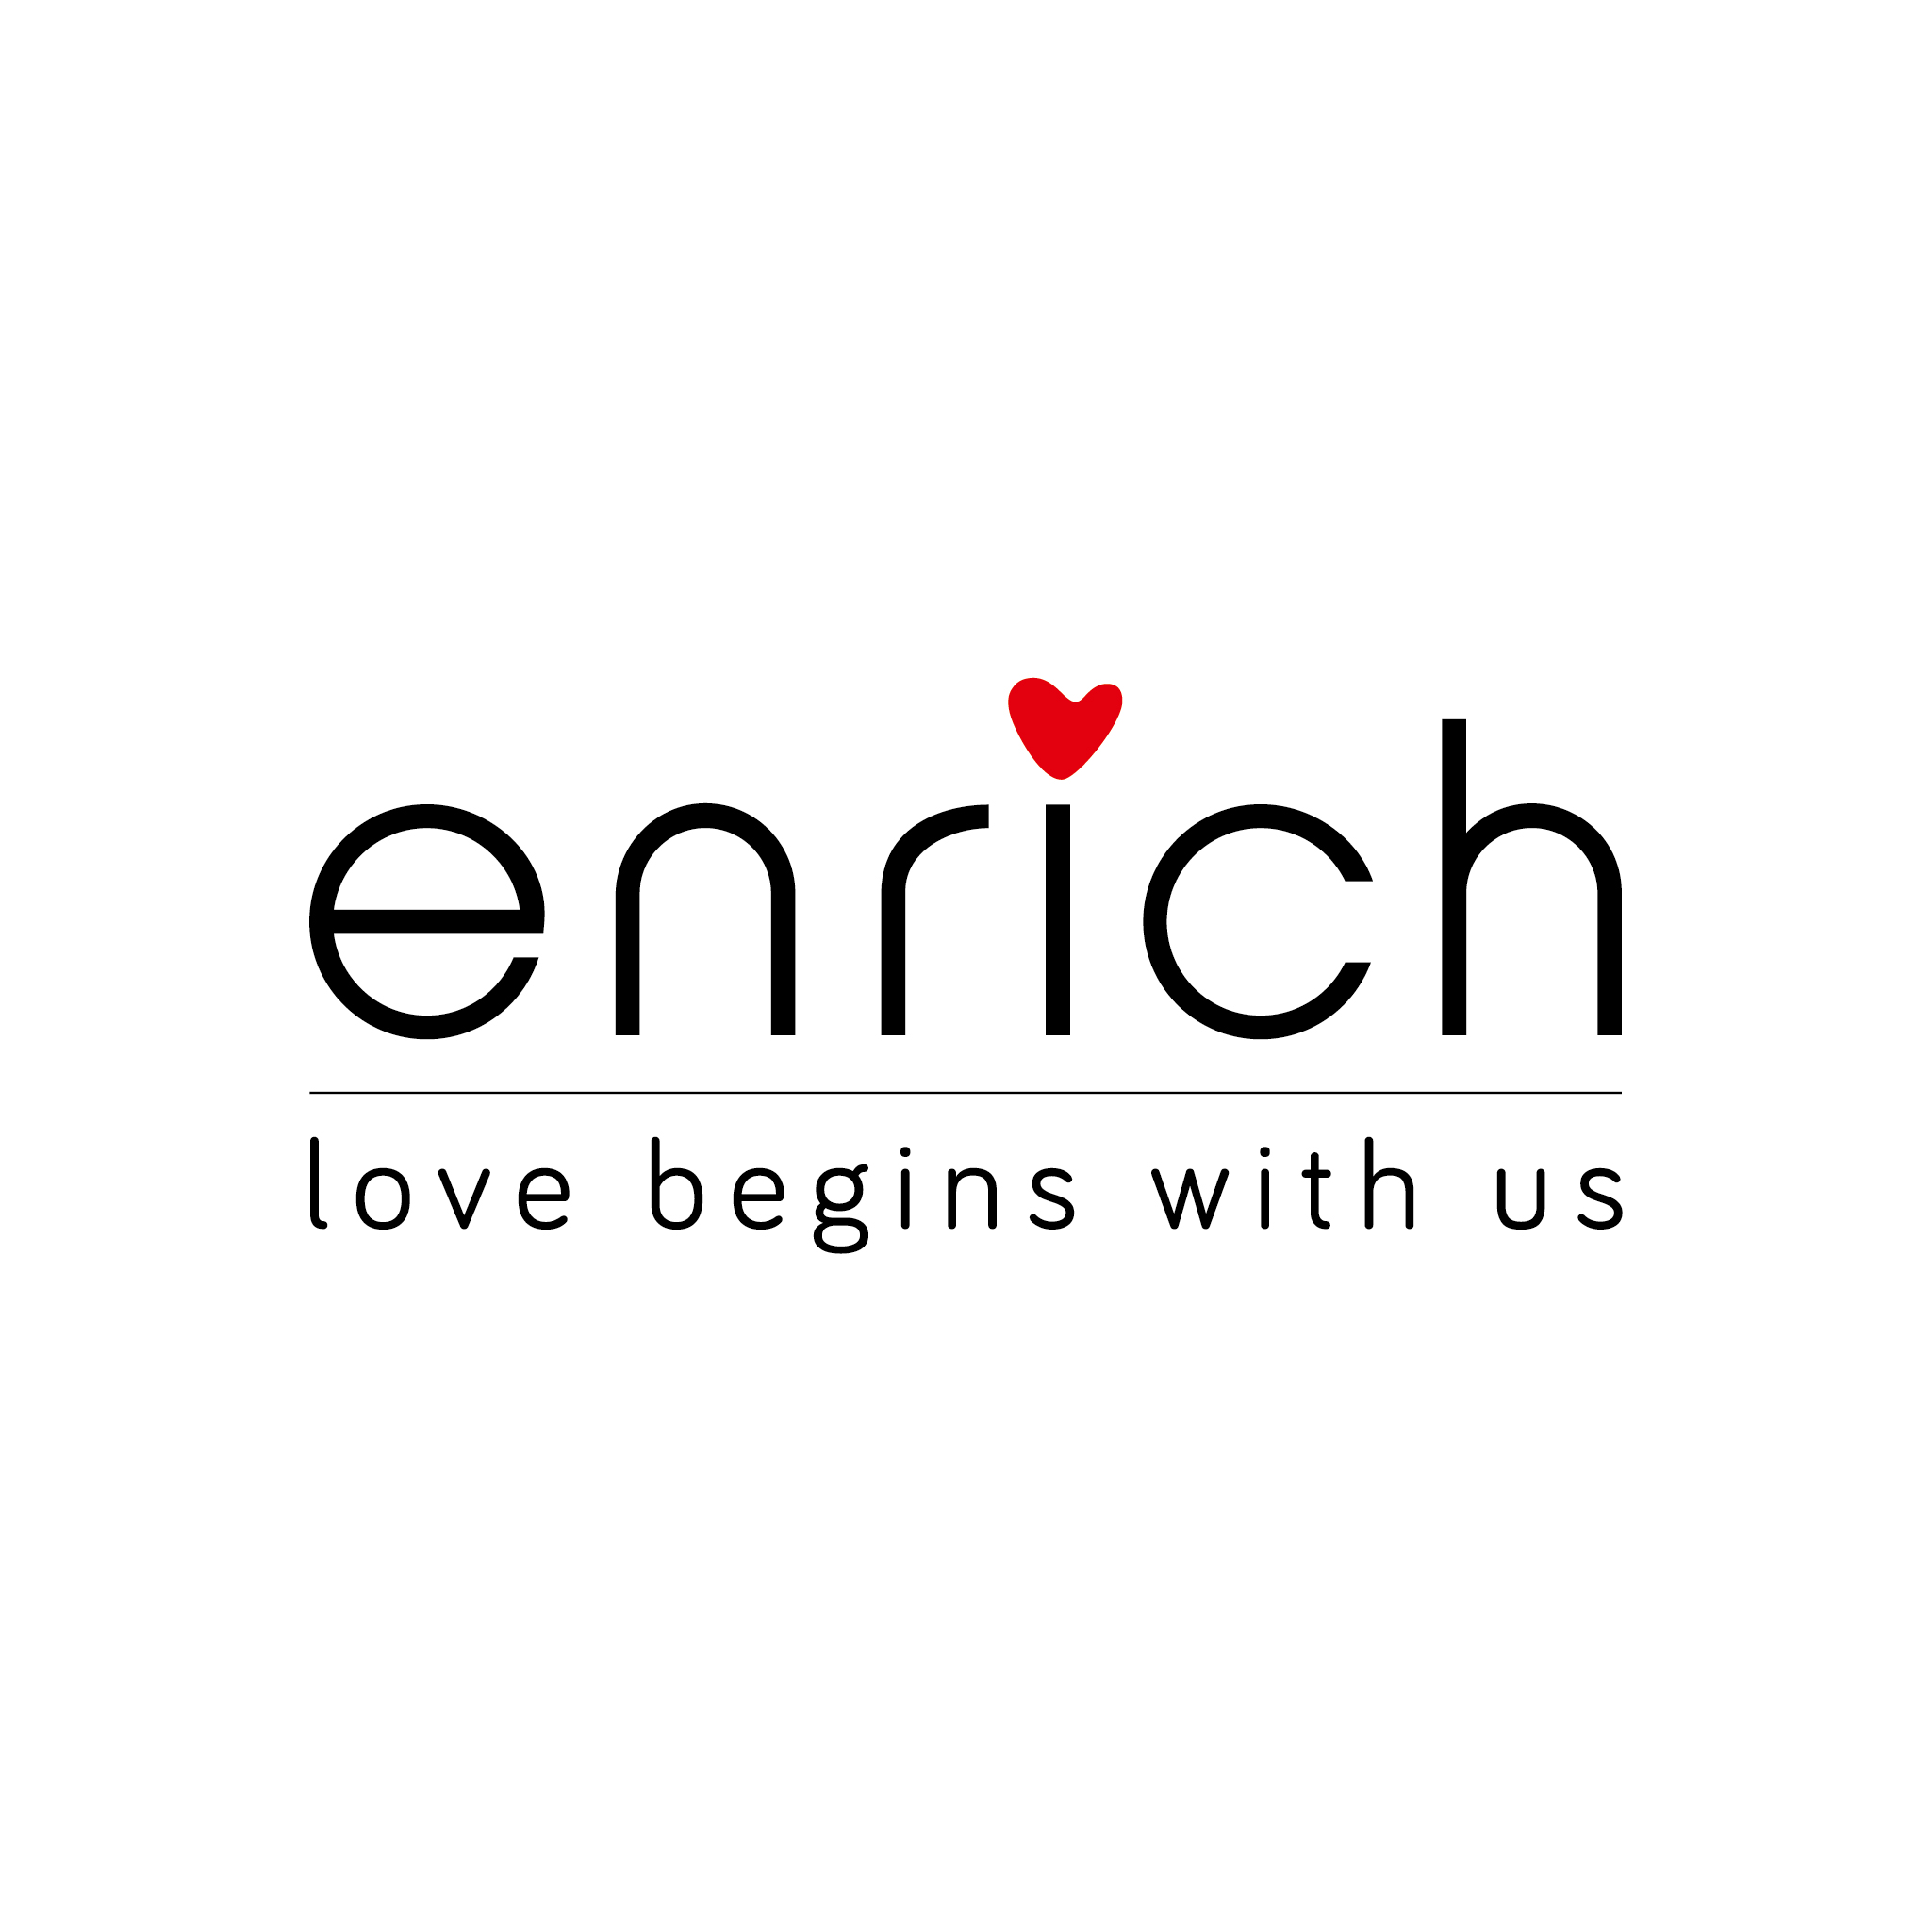 We love supporting you like you support each other. This is why we're always by your side, in the form of the Enrich app - a beauty confidant that looks out for all your self-care needs.